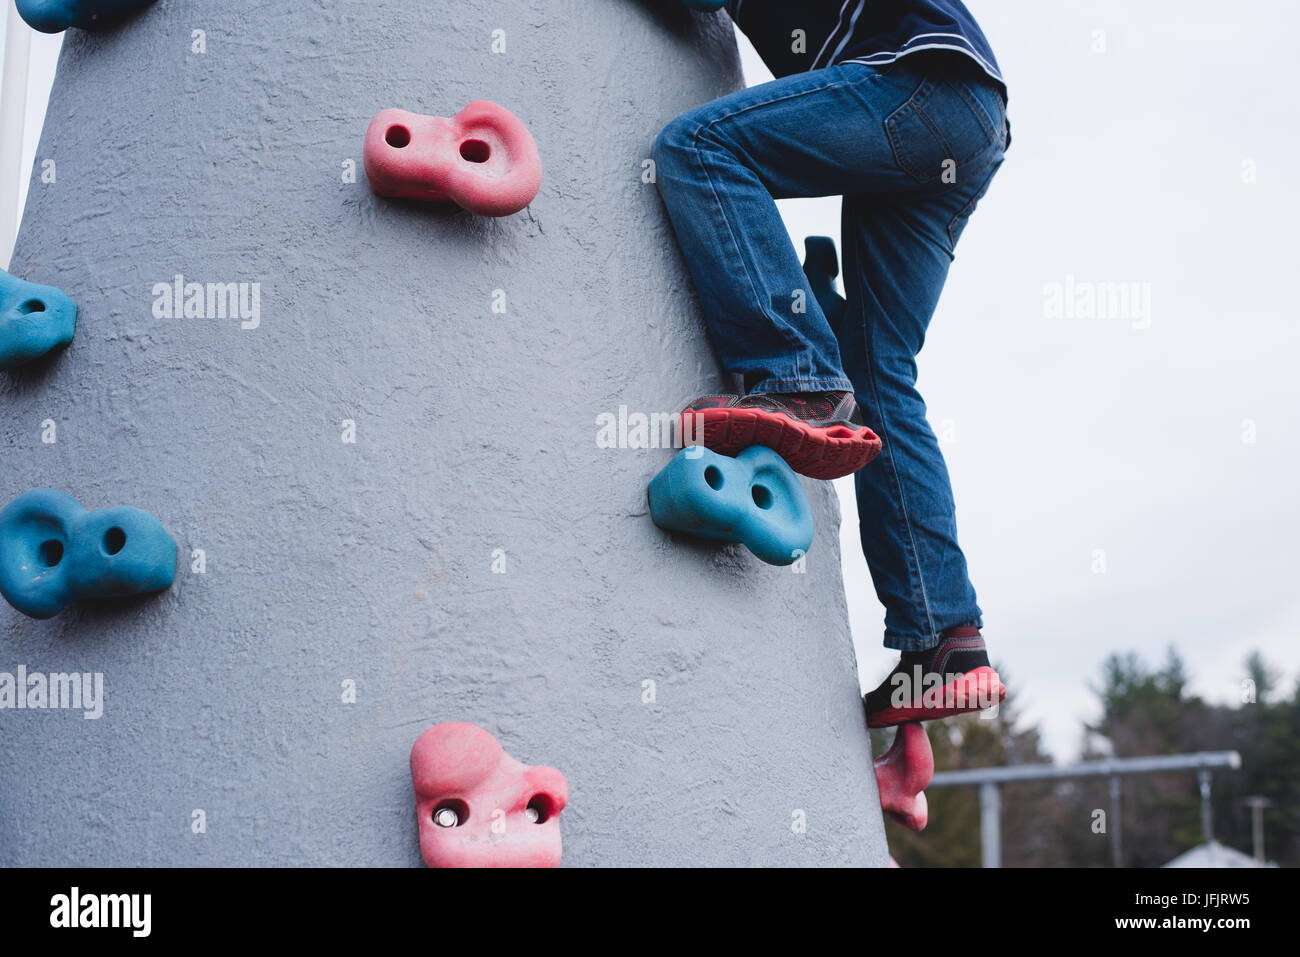 A boy climbs playground equipment. - Stock Image